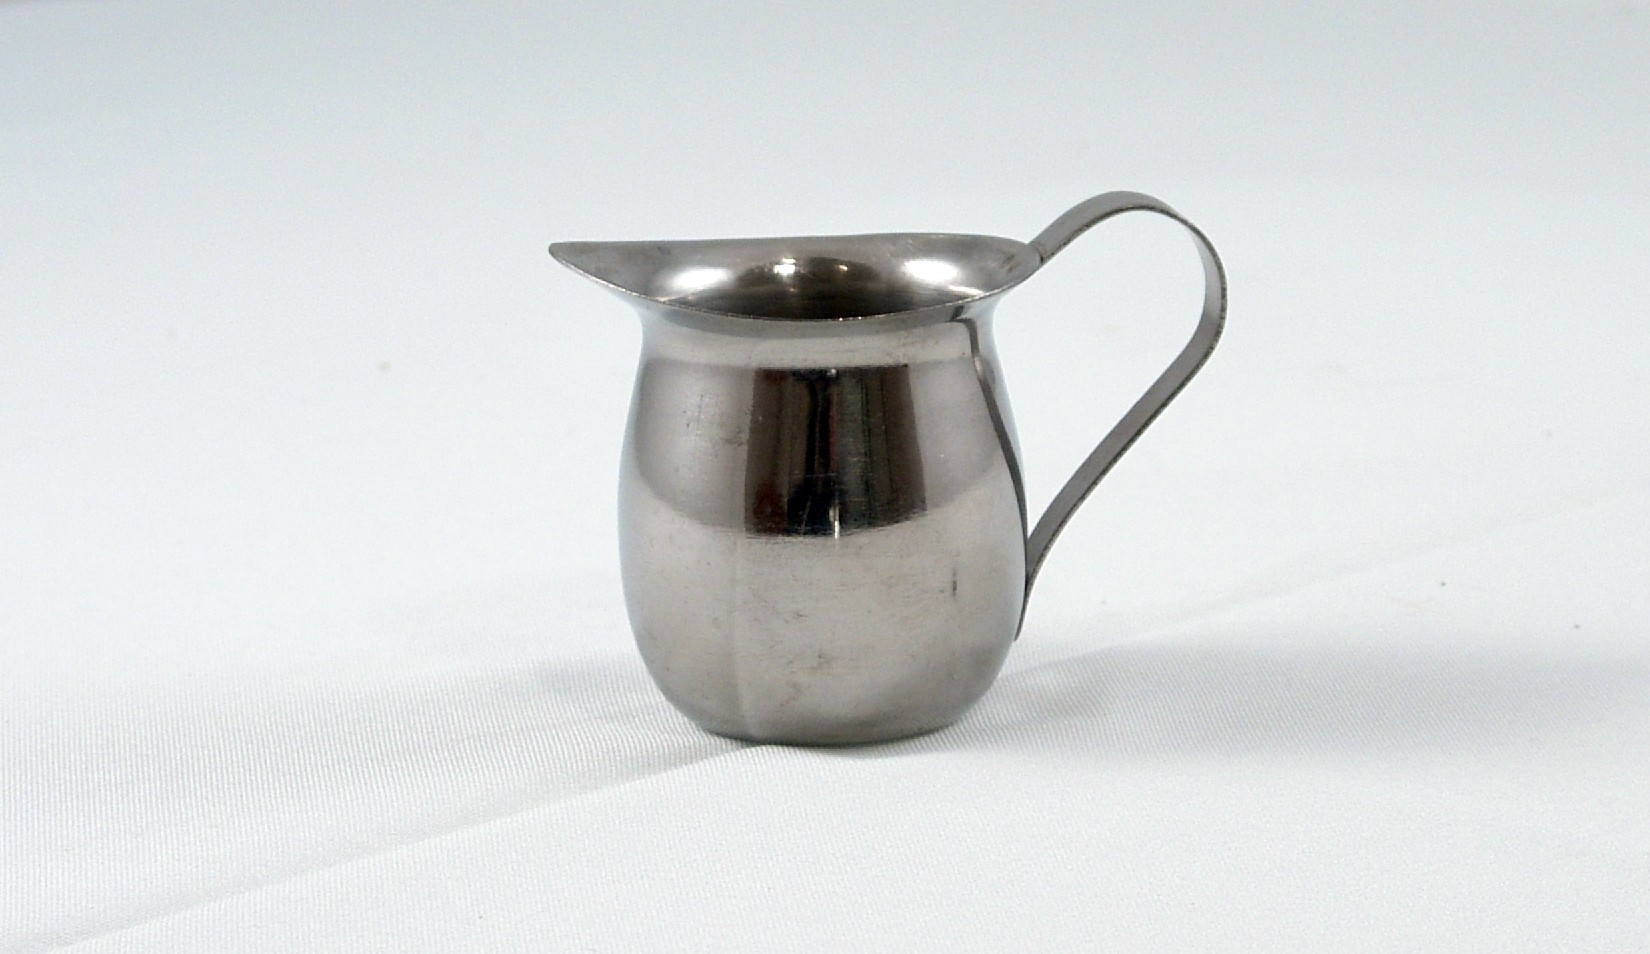 Stainless Steel Creamer - CE94